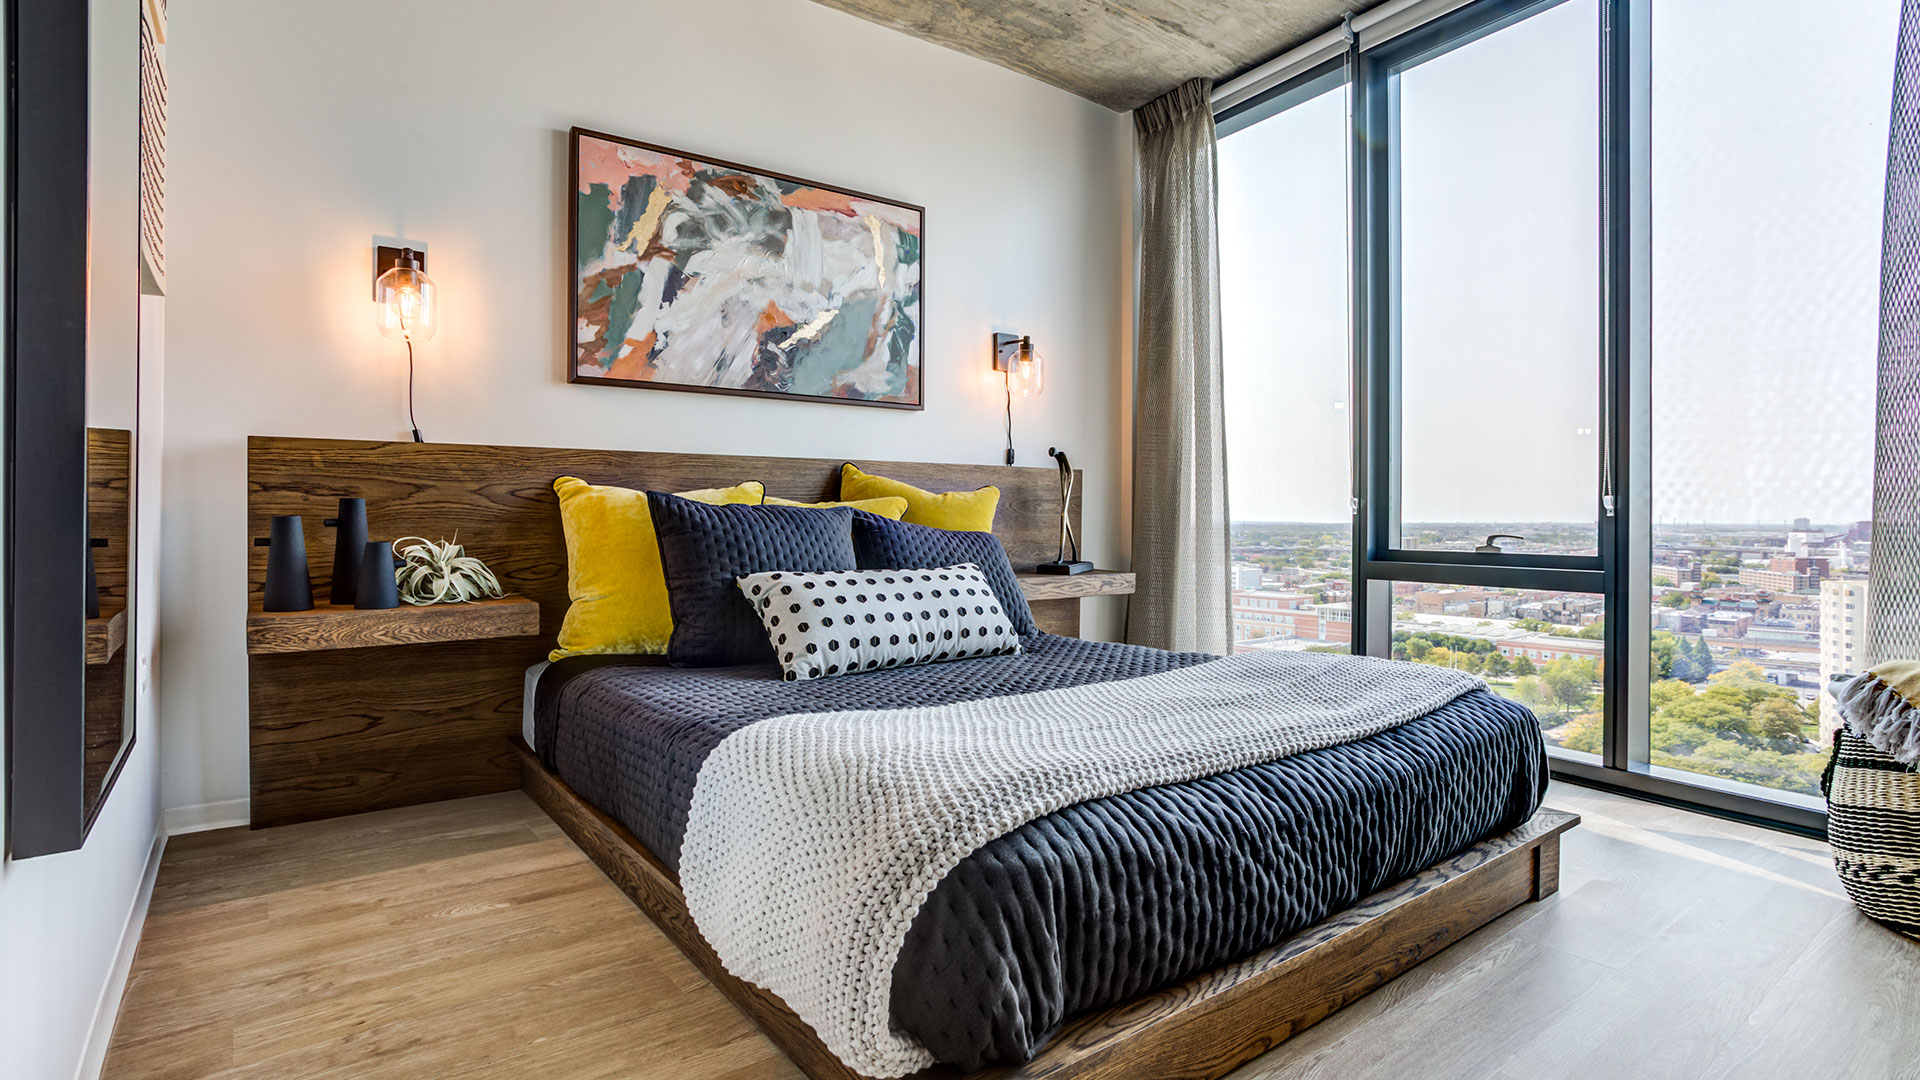 A bed with wooden headboard and end tables sits next to floor-to-ceiling windows, the city seen outside.